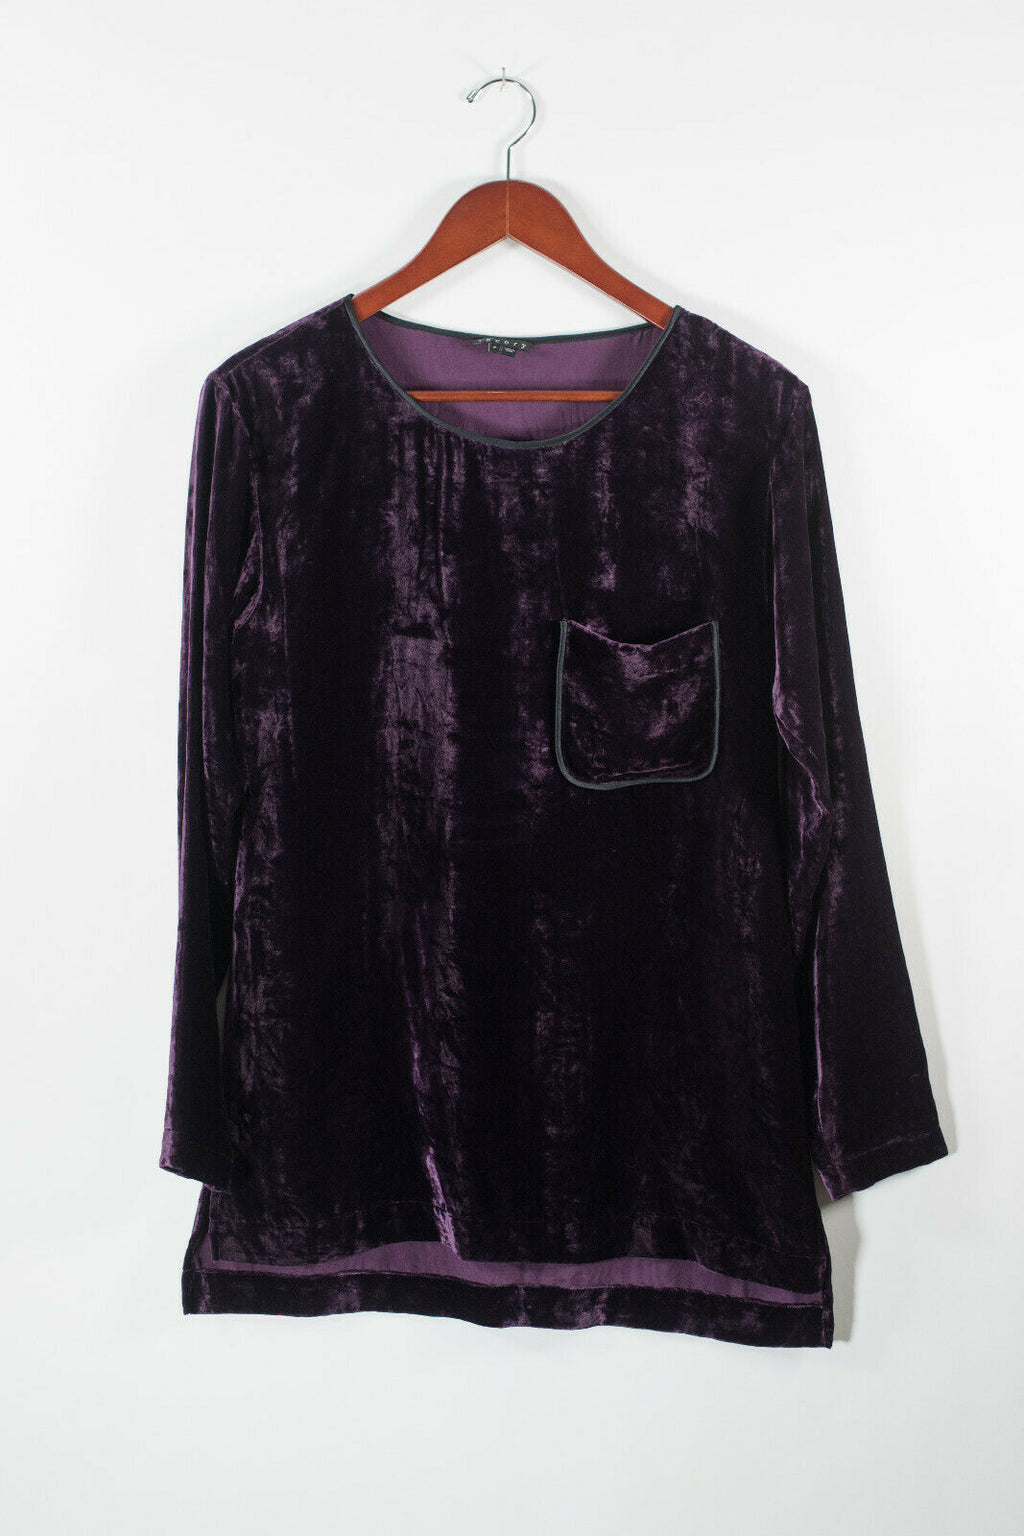 Theory Womens Petite Purple Shirt Crushed Velvet Silk Blouse Top Front Pocket